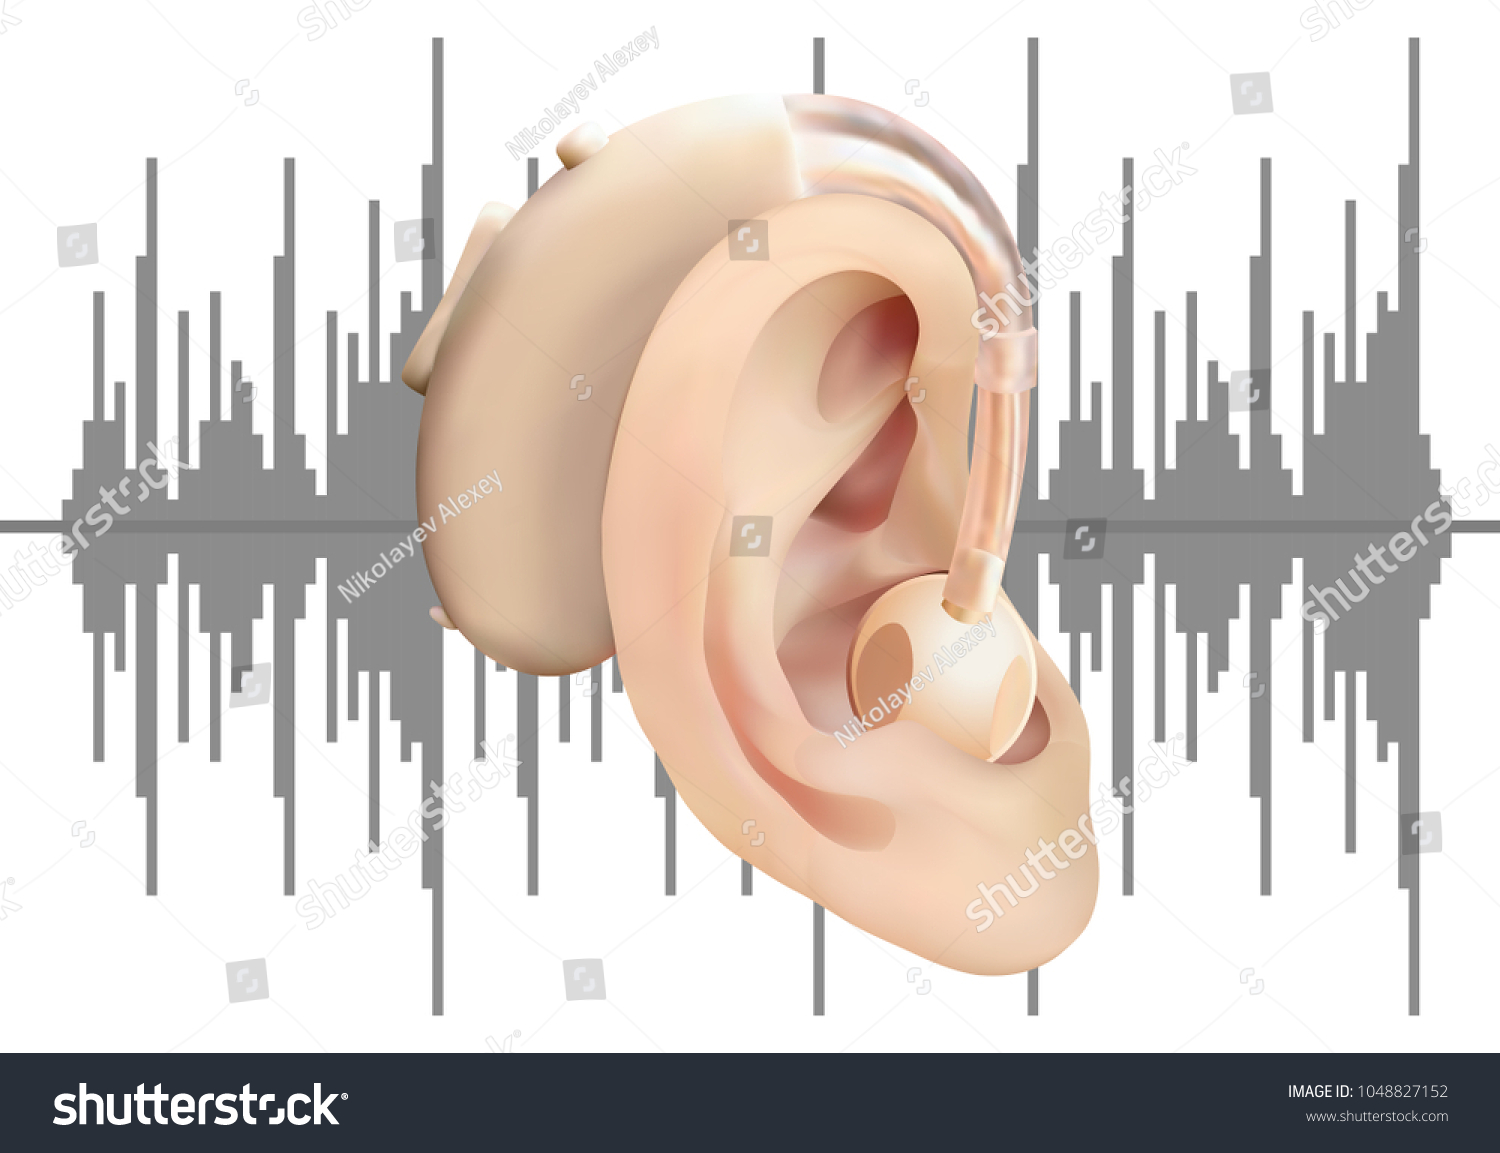 hight resolution of digital hearing aid behind the ear on background of sound wave diagram treatment and